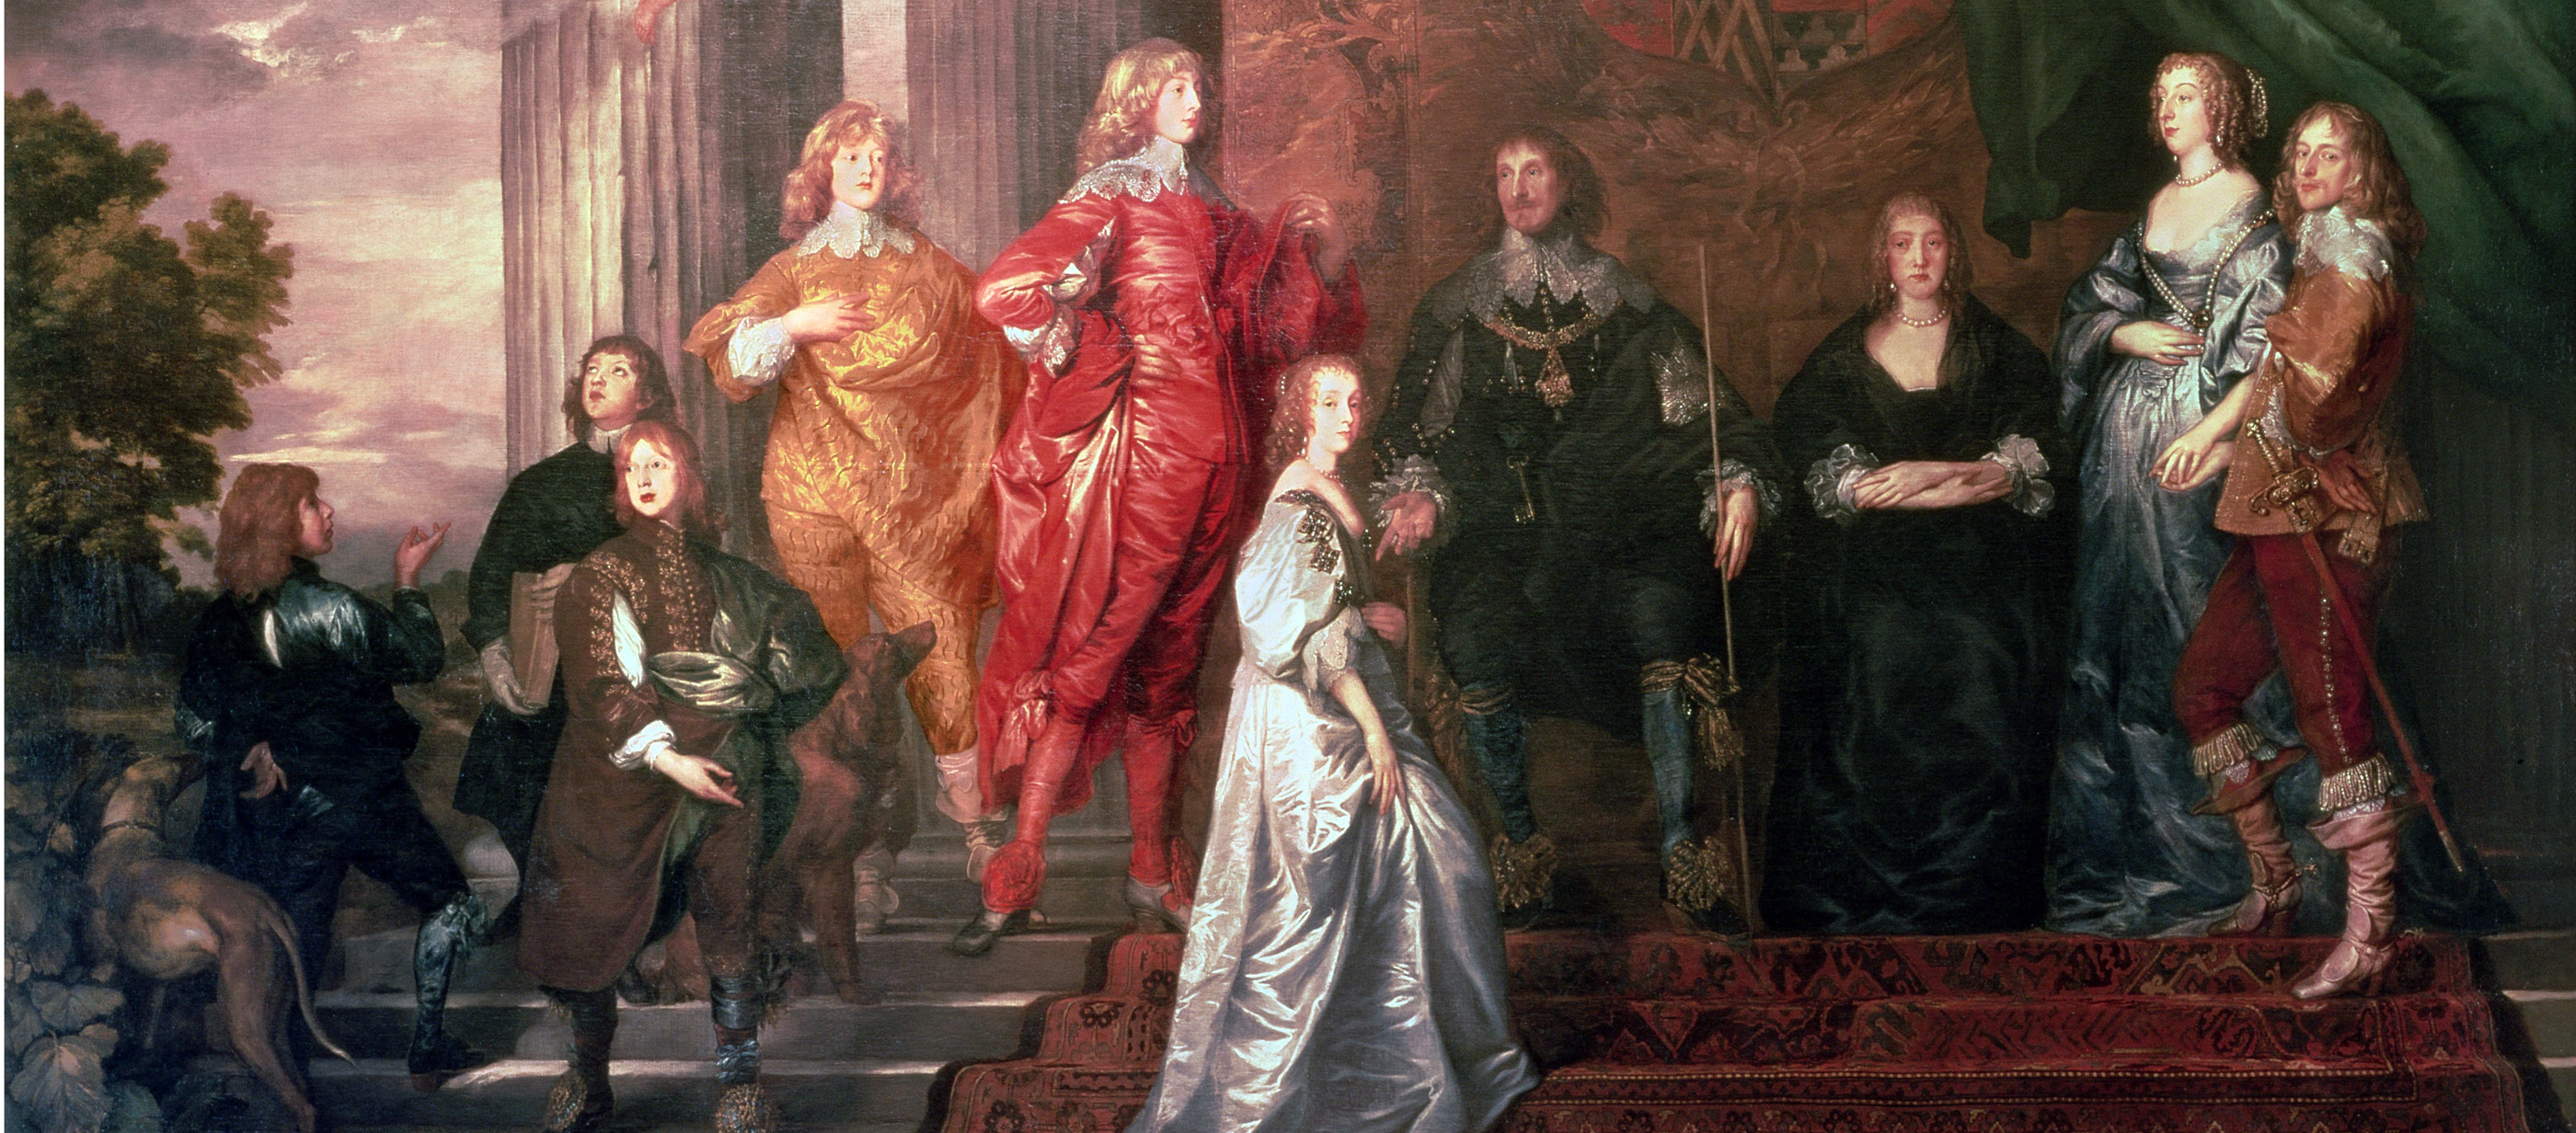 Philip Herbert, Fourth Earl of Pembroke, and His Family, by Sir Anthony van Dyck, c. 1635. The Earl of Pembroke's Collection.